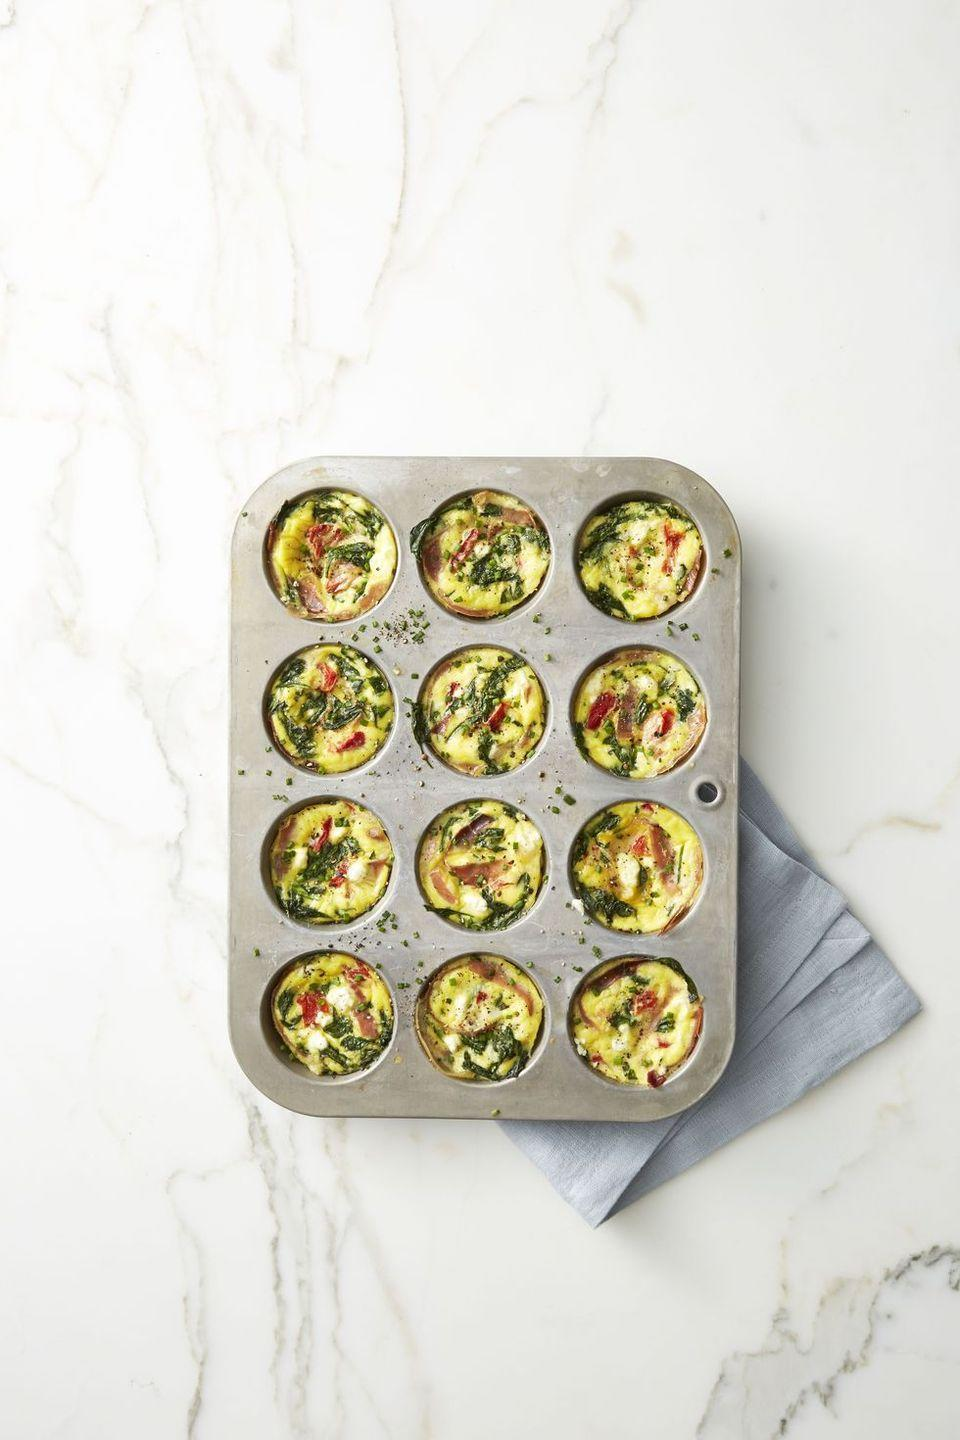 "<p>Pop these healthy egg ""muffins"" in the microwave for 30 seconds to reheat, and bring with you on-the-road to Grandma's.</p><p><em><a href=""https://www.goodhousekeeping.com/food-recipes/easy/a42206/spinach-and-prosciutto-frittata-muffins-recipe/"" rel=""nofollow noopener"" target=""_blank"" data-ylk=""slk:Get the recipe for Spinach and Prosciutto Frittata Muffins »"" class=""link rapid-noclick-resp"">Get the recipe for Spinach and Prosciutto Frittata Muffins »</a></em></p>"